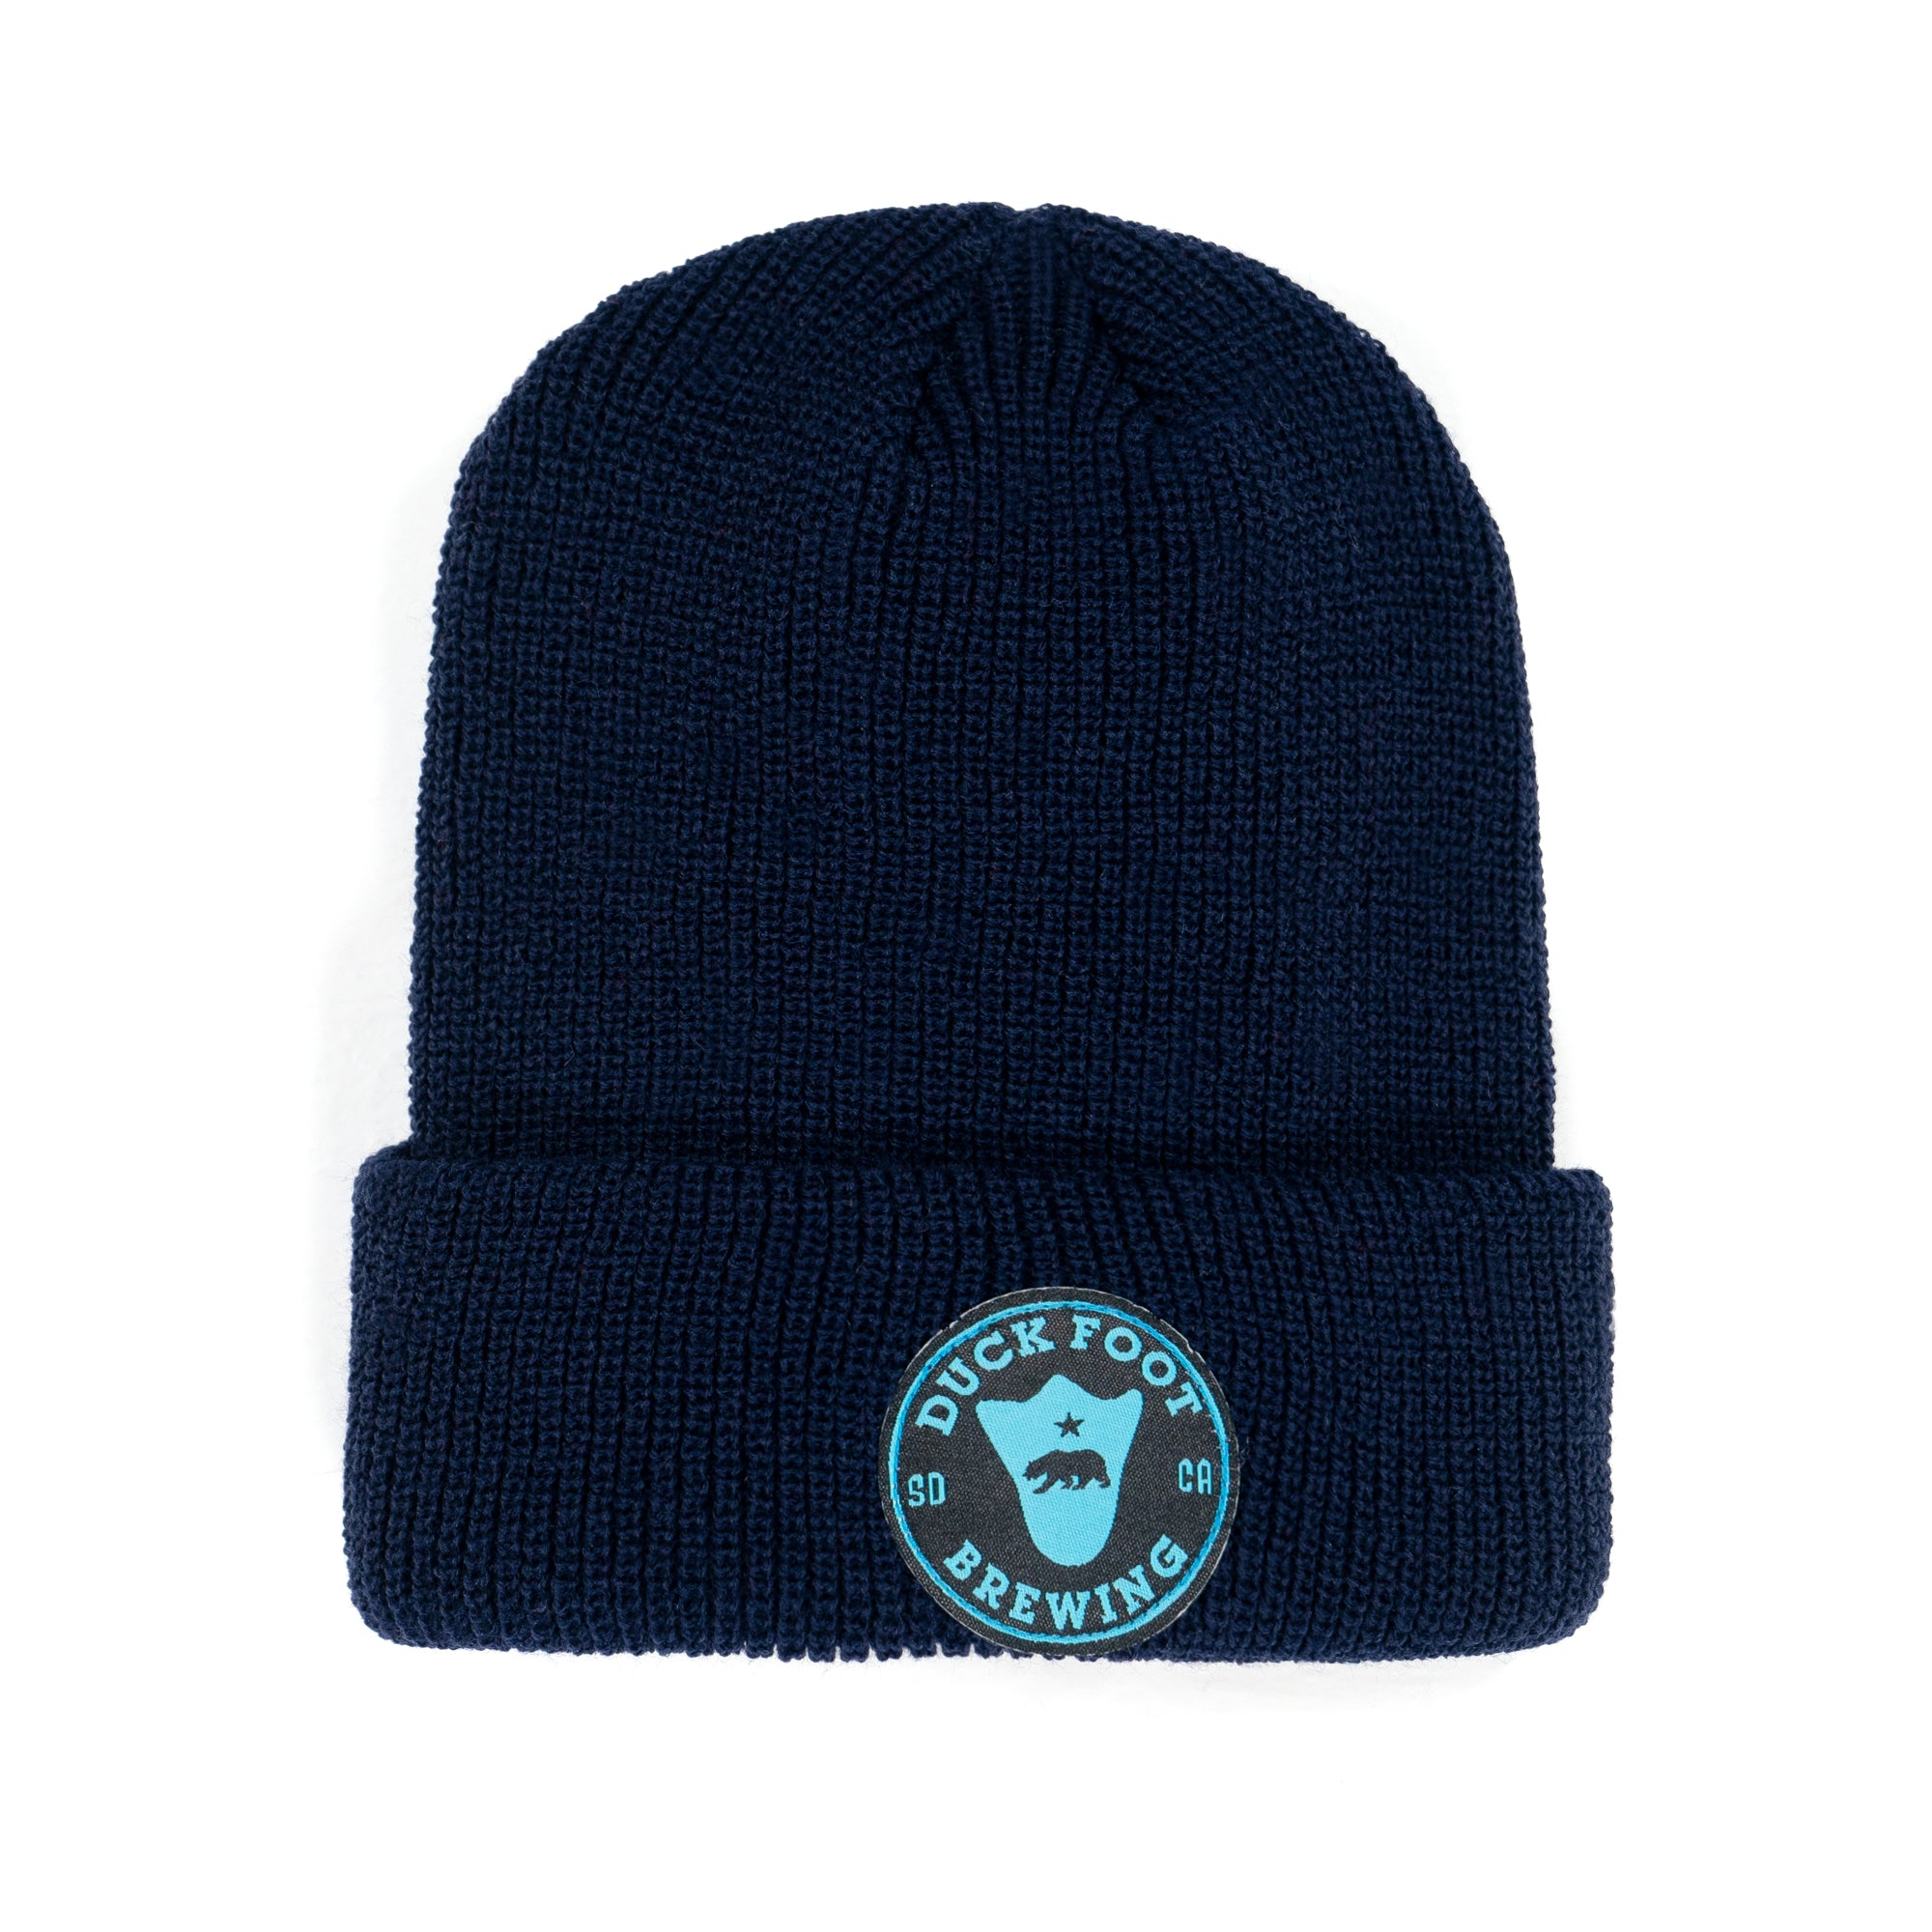 Bear Foot Circle Patch Skull Cap Beanie (Navy)